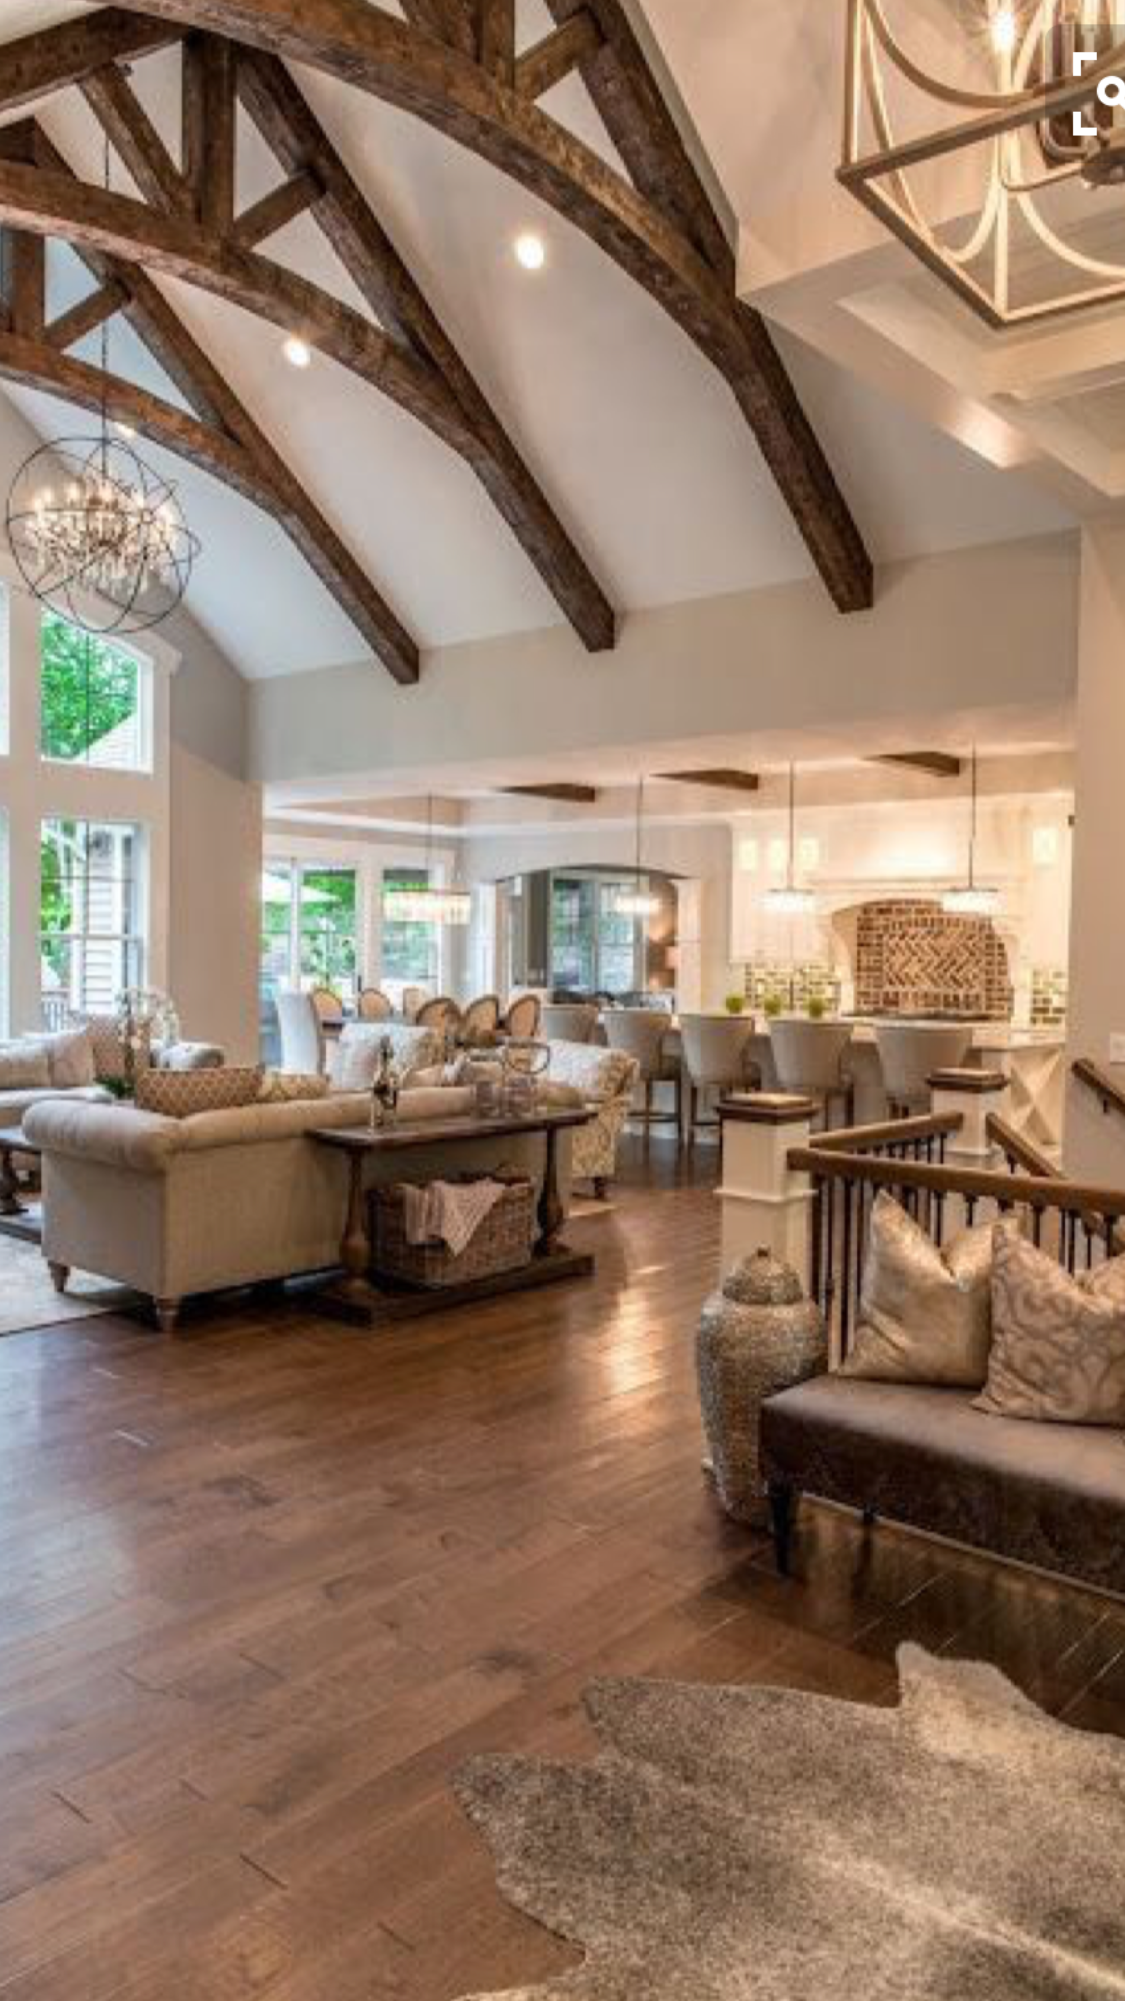 Love The Wooden BeamsReal Fit Housewife Welcome To My Home Our Little Slice Of Heaven Those Beams Restoration Hardware Wood Floors